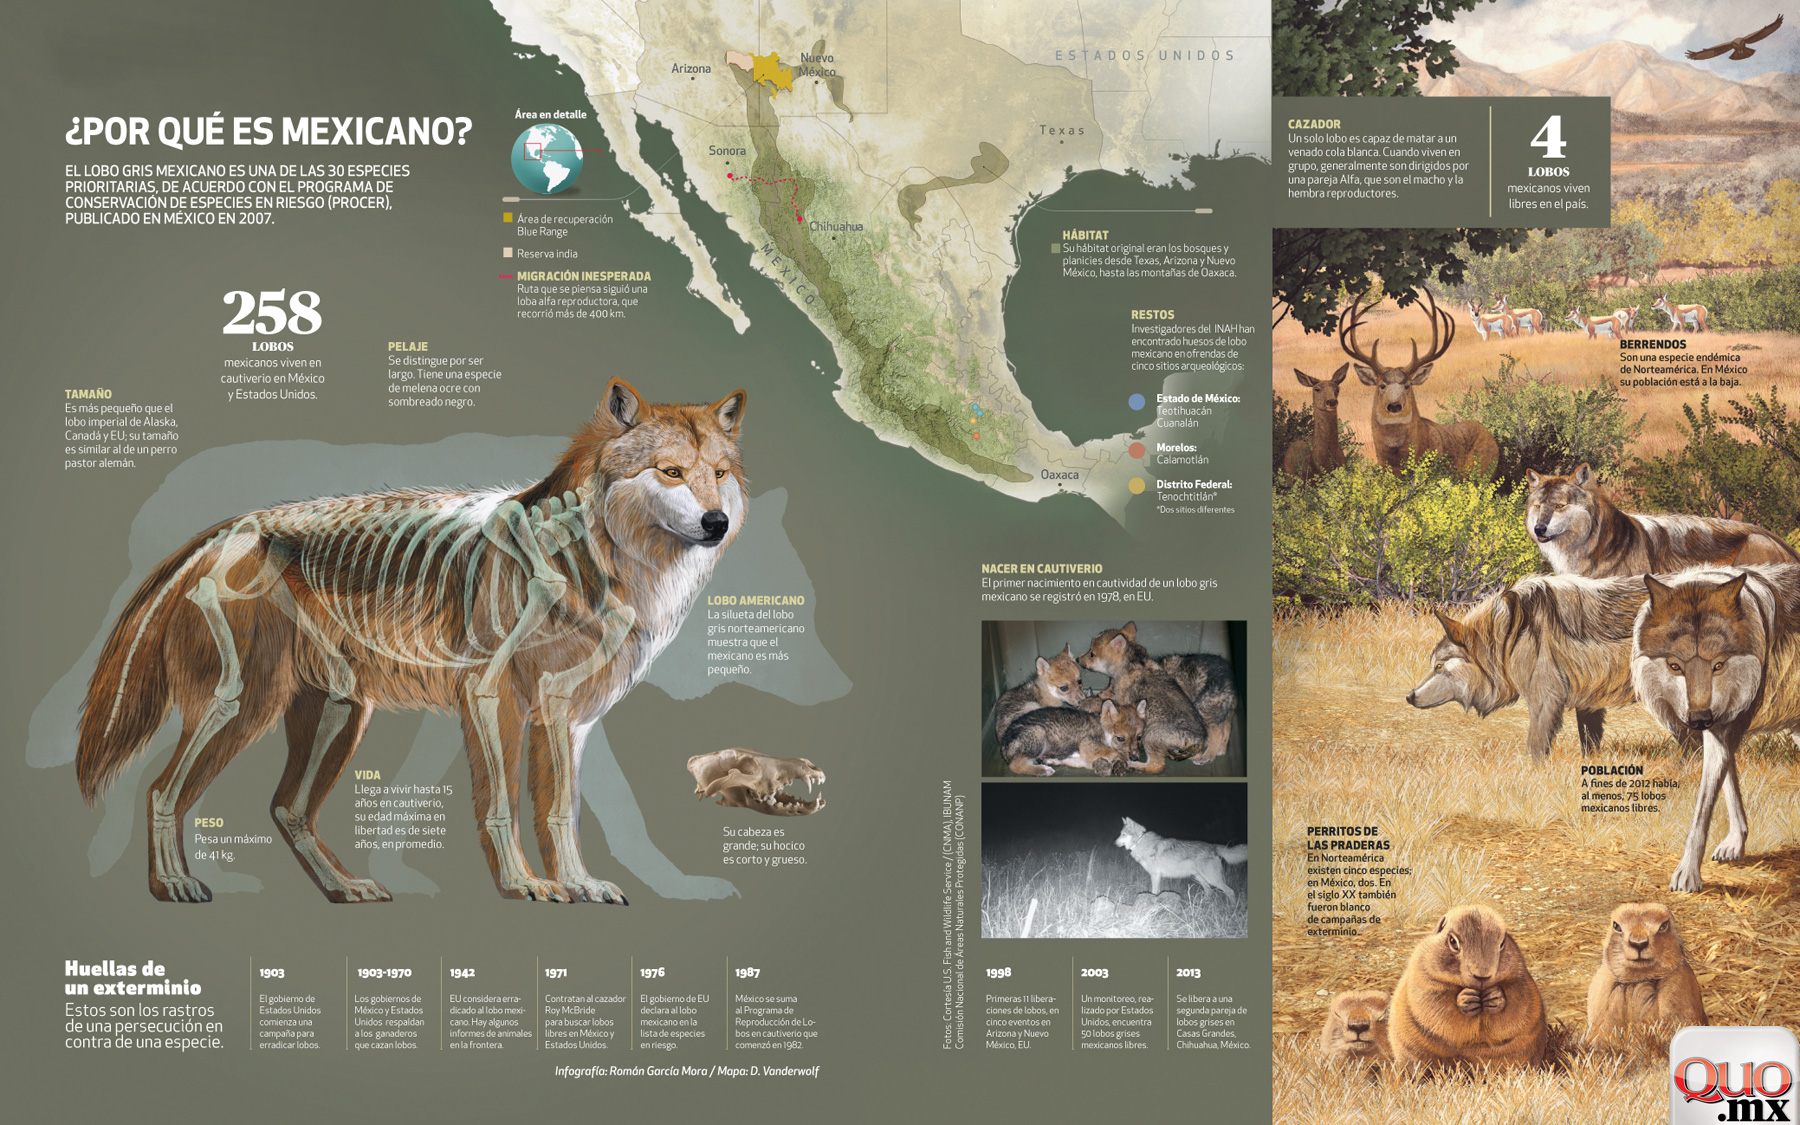 Mexican Wolf, Quo Magazine October 2013. Final composition. Art By Román García Mora.